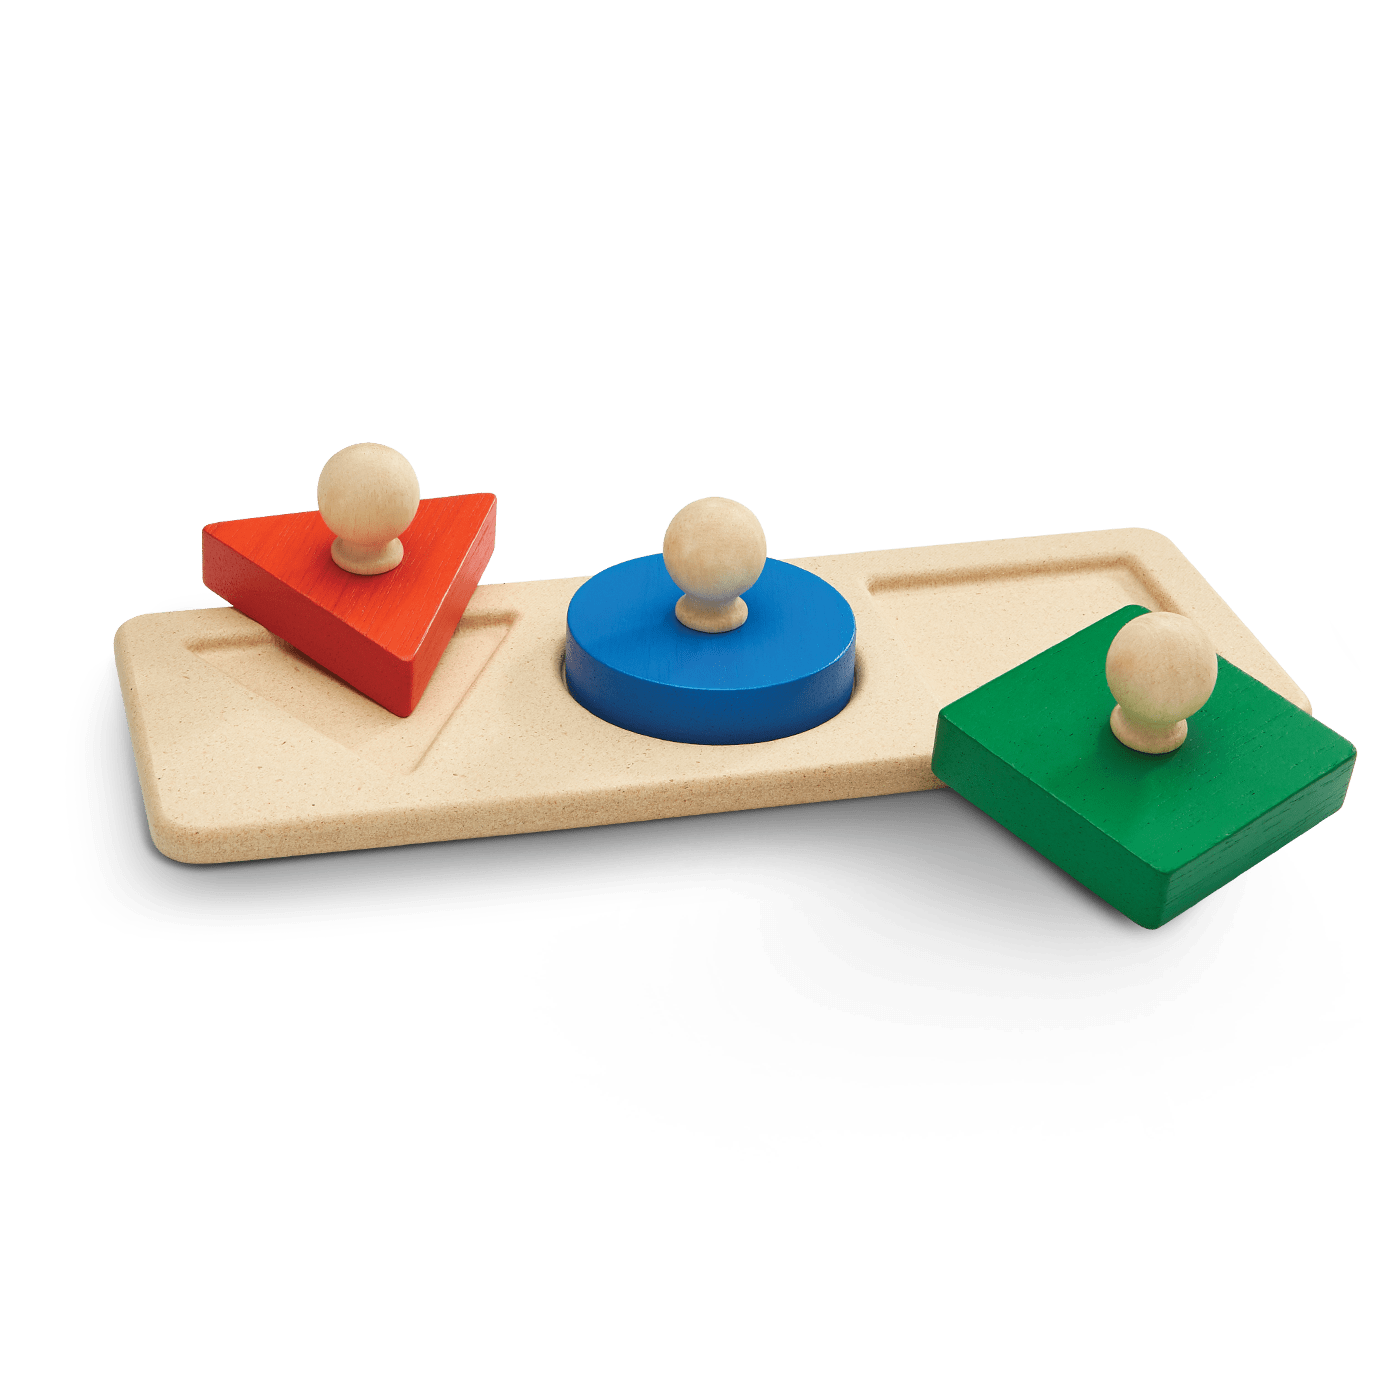 5390_PlanToys_SHAPE_MATCHING_PUZZLE_Learning_and_Education_Concentration_Coordination_Mathematical_Problem_Solving_Social_12m_Wooden_toys_Education_toys_Safety_Toys_Non-toxic_0.png